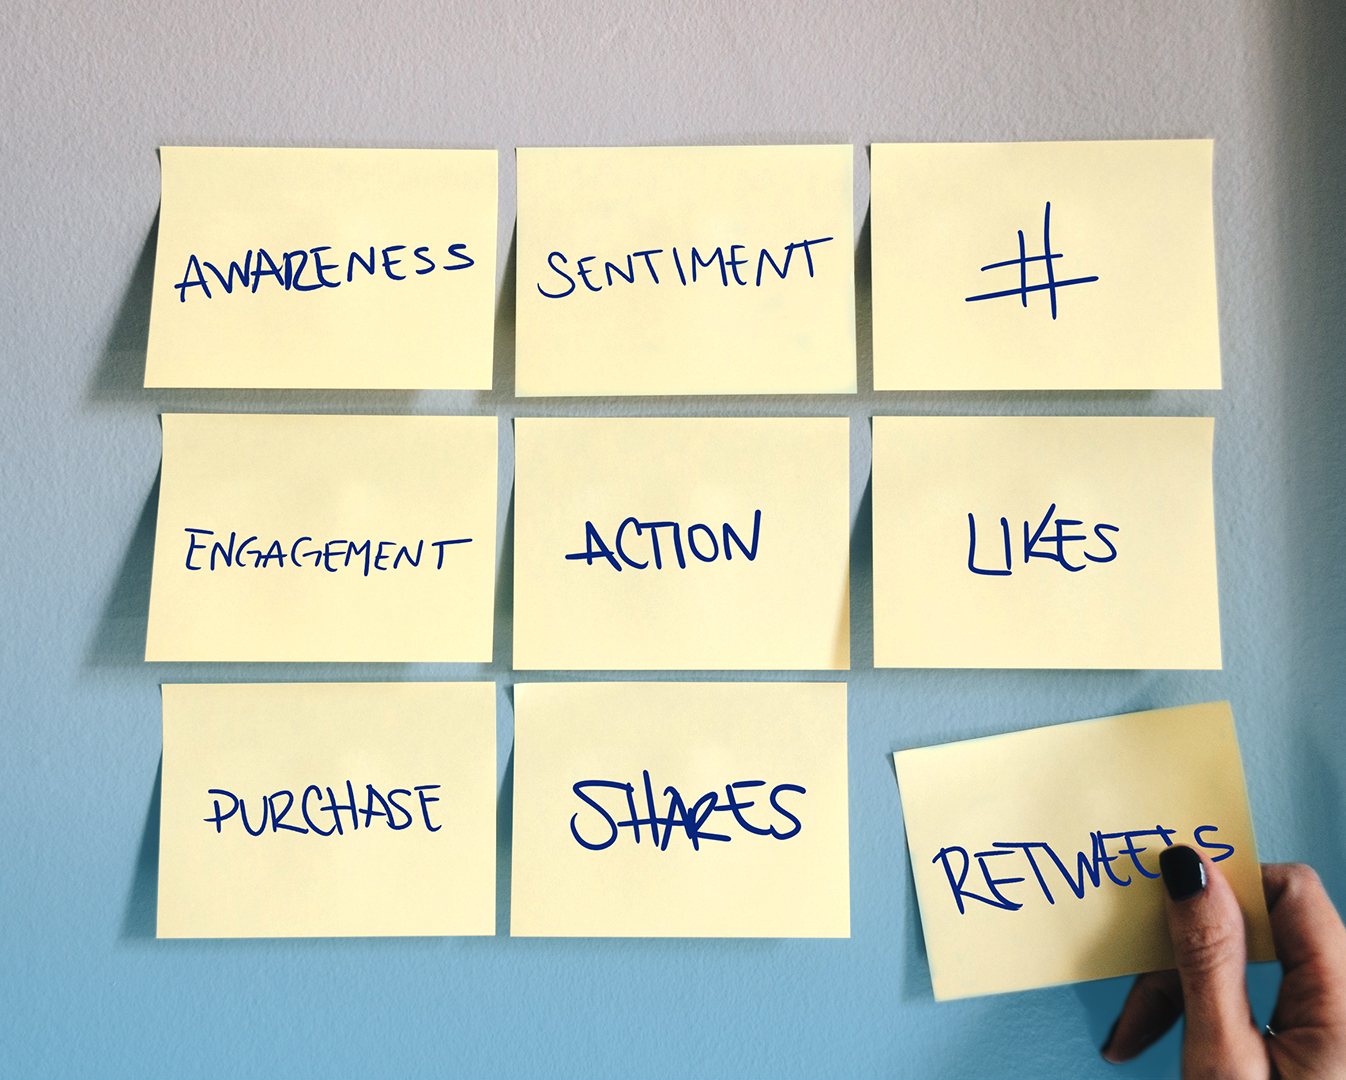 1. Campaign Objectives - WHOSAYhelps its clients set detailed influence marketing objectives in Awareness,Engagement, Sentiment and Action.The objectives determine the creative direction, most effective talent matches, distribution and media plans, and the campaign success metrics.